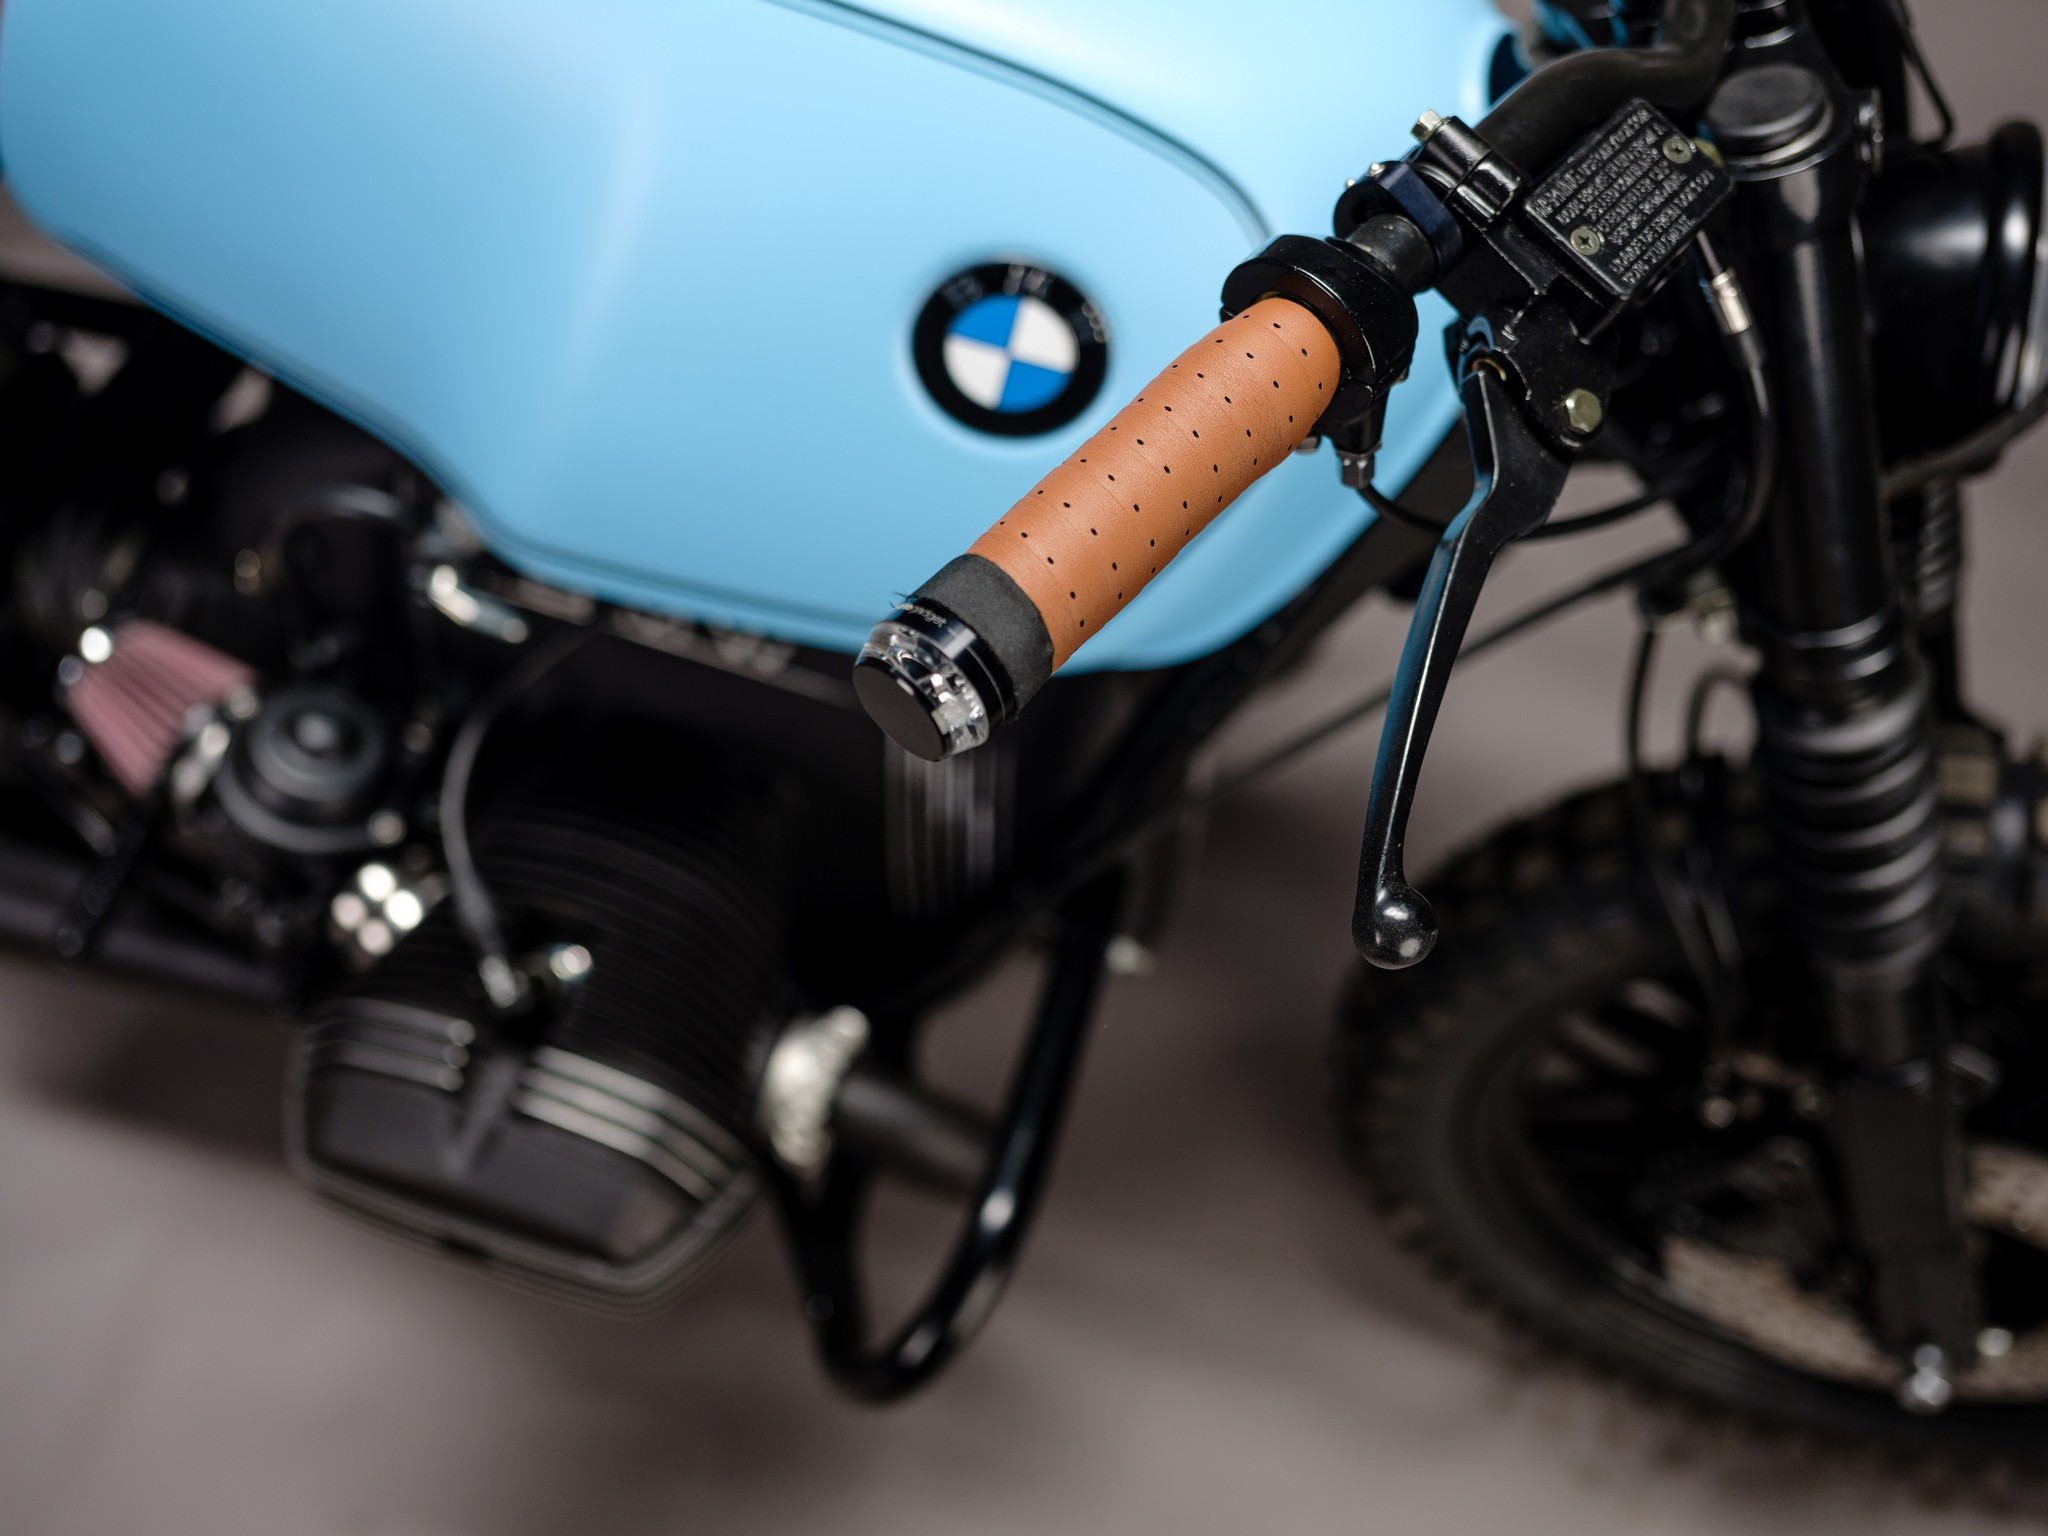 Throttle detail for custom 1982 BMW R65 Scrambler from AMP Motorcycles in Germany